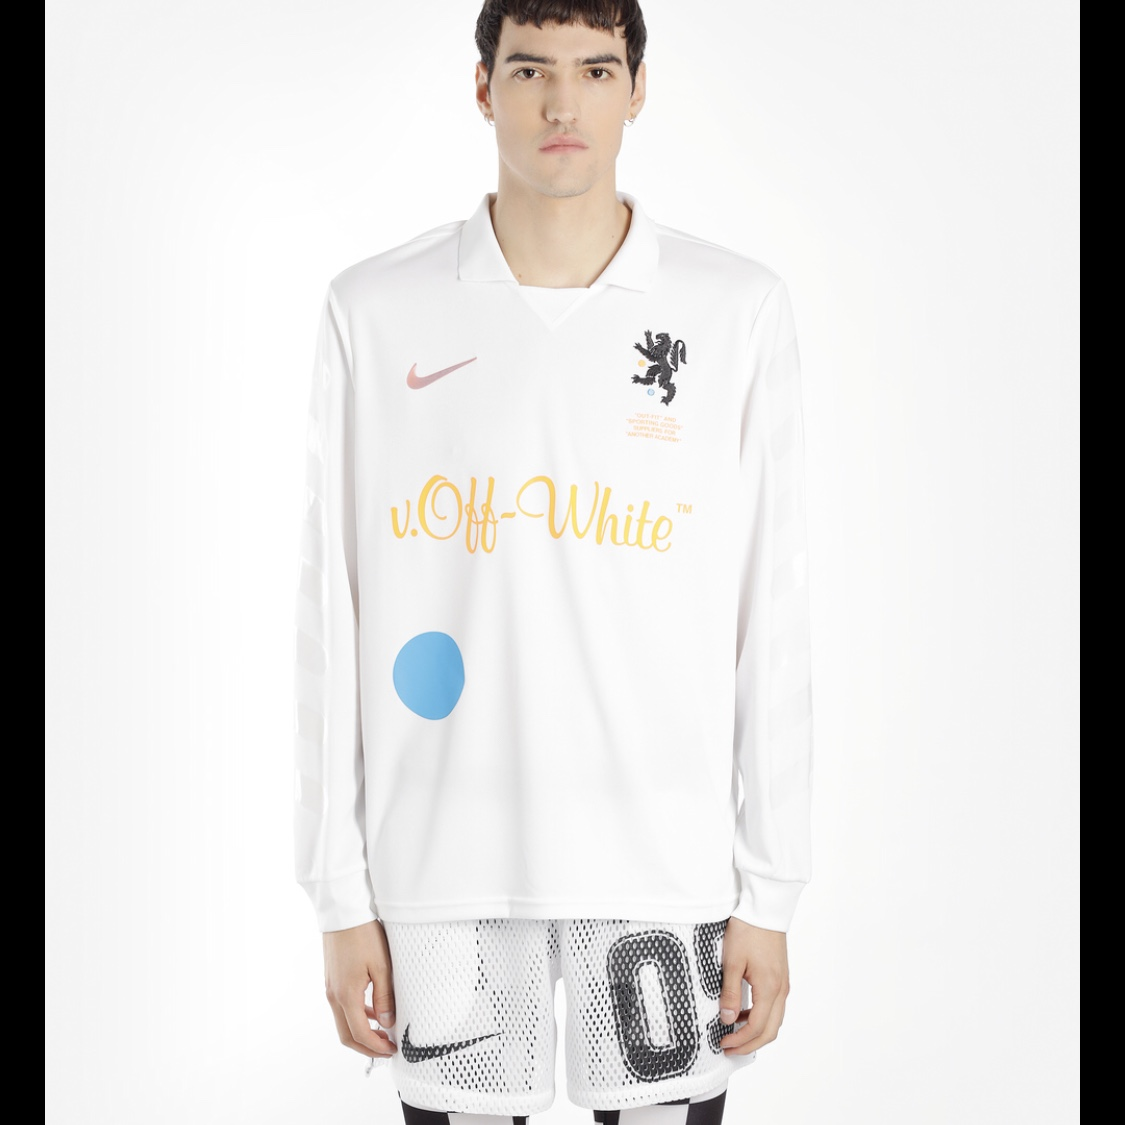 competitive price 659be a0bf9 Nike off white football jersey. ORDER CONFIRMED(see ...